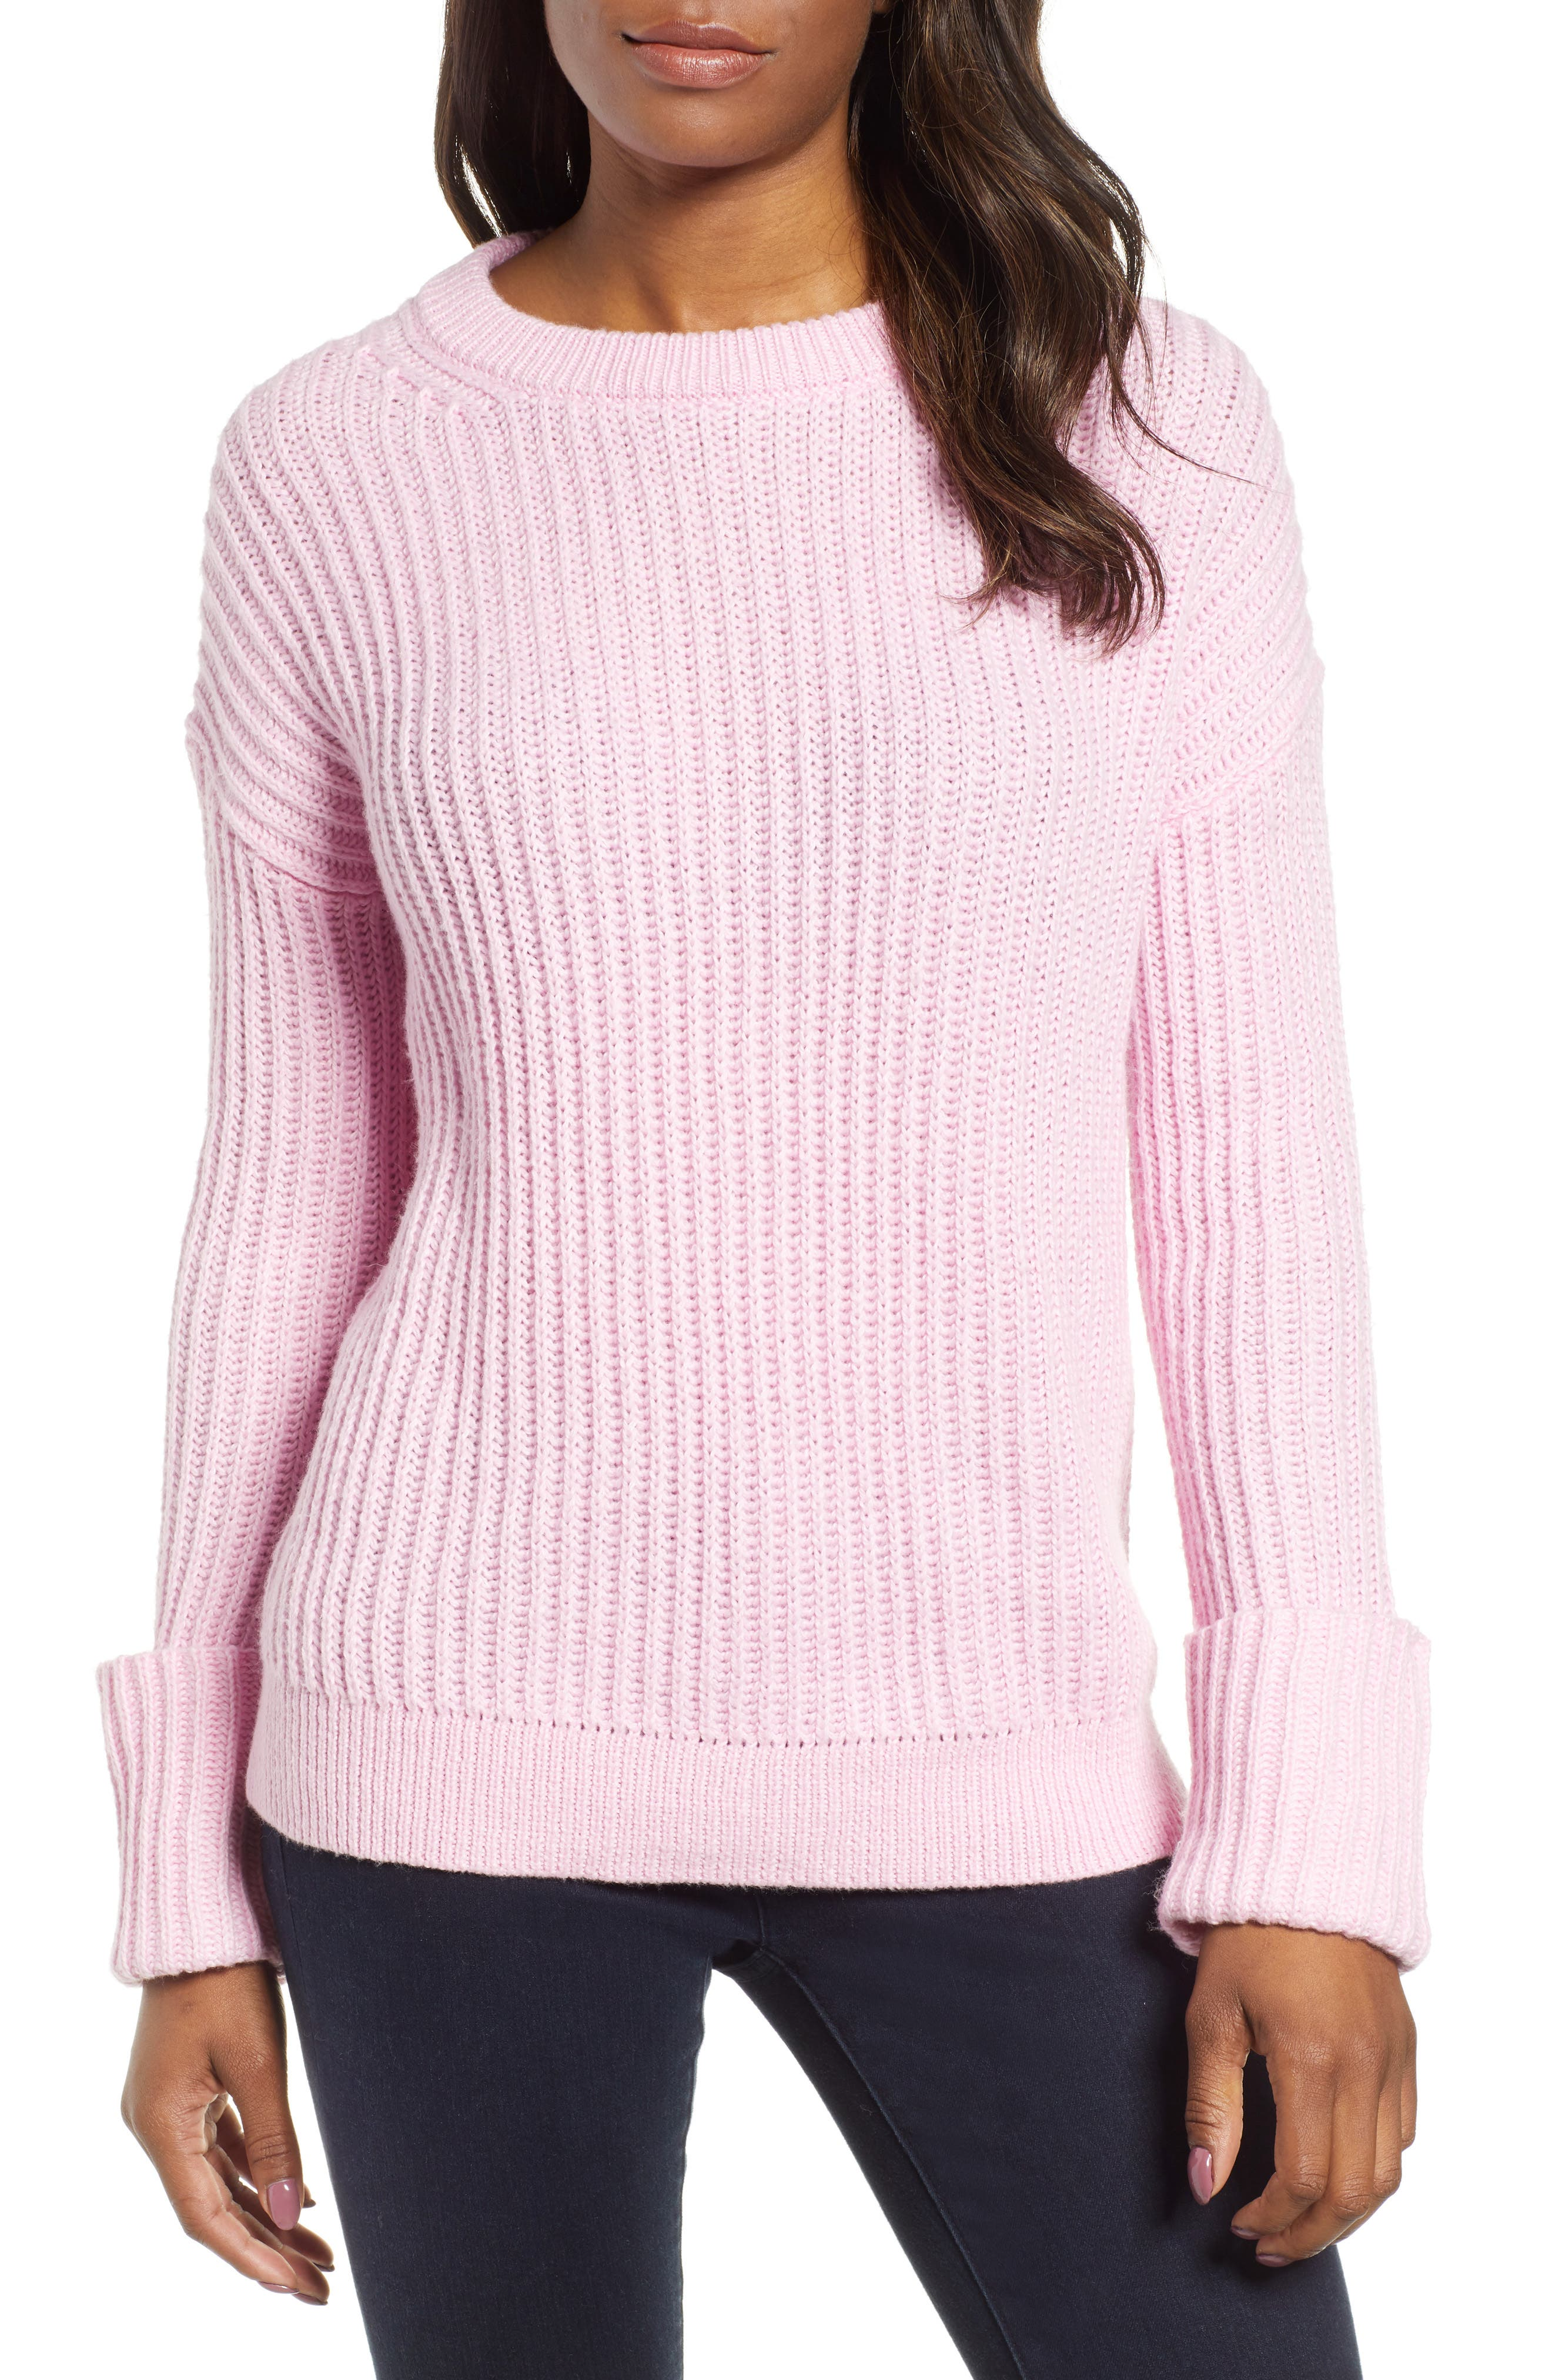 CASLON<SUP>®</SUP>, Cuffed Sleeve Shaker Sweater, Main thumbnail 1, color, PINK FLOWER